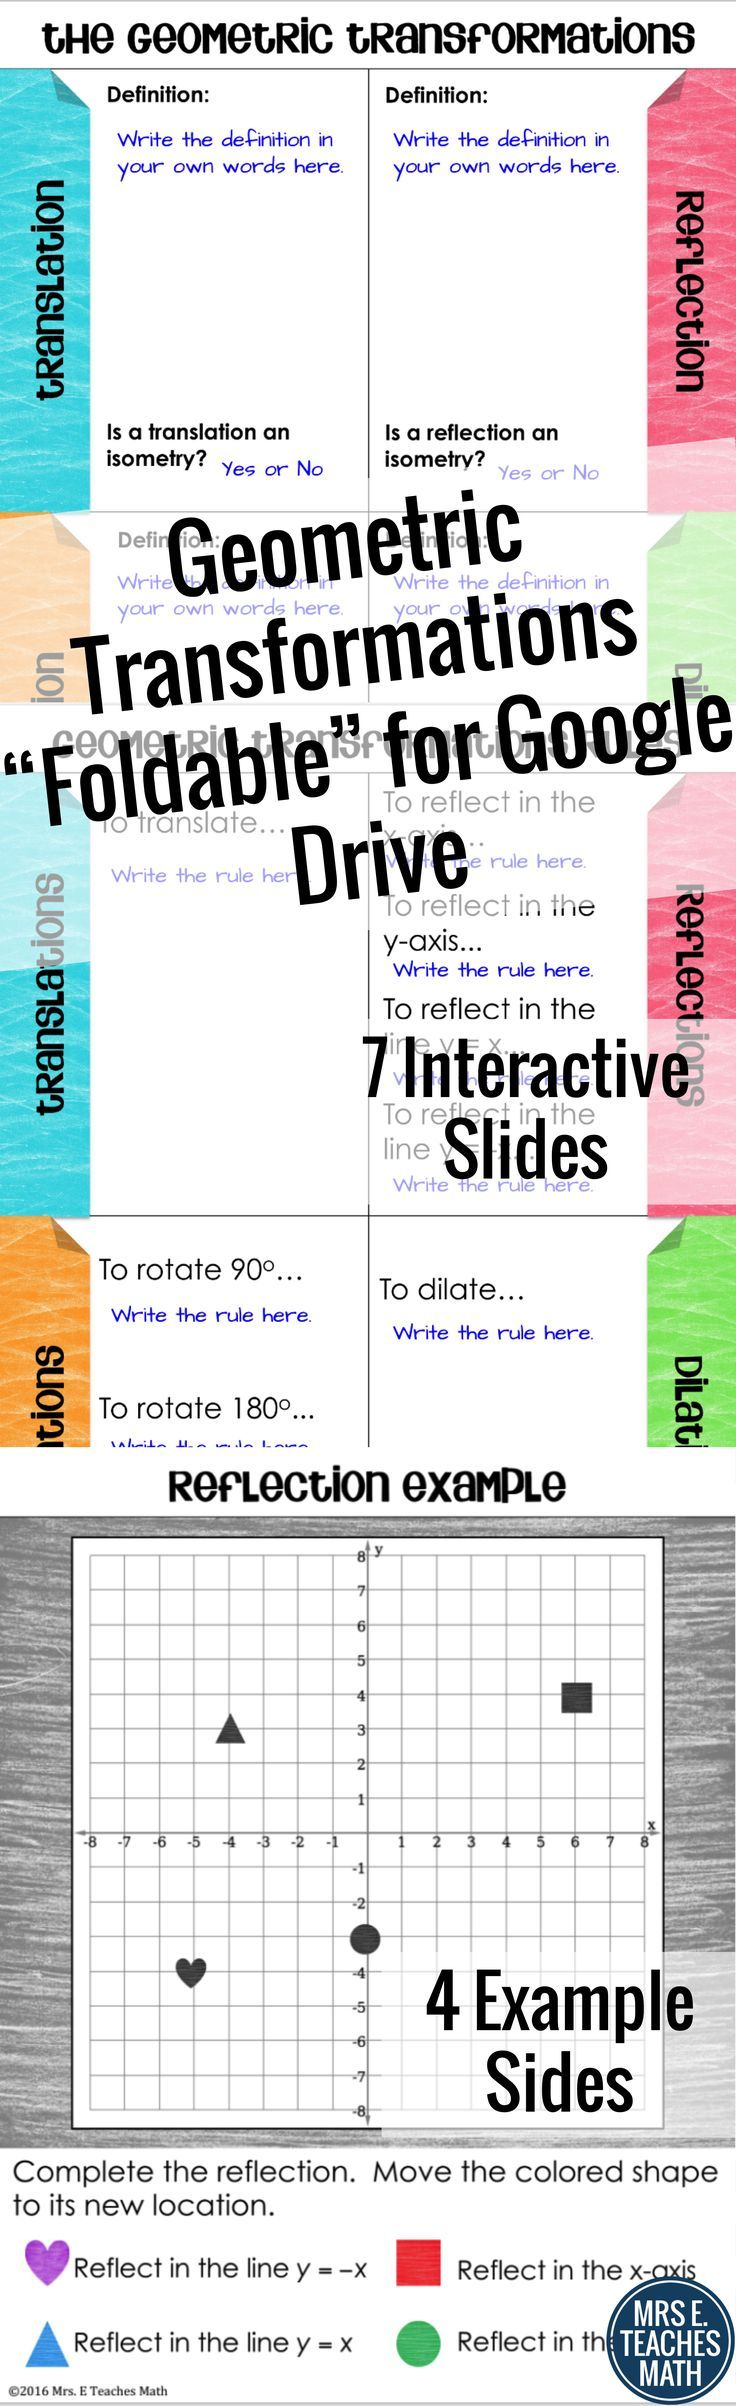 worksheet Translation And Reflection Worksheet best 25 transformation geometry ideas on pinterest plane geometric transformations foldable activity for google drive 7 interactive slides students to create their